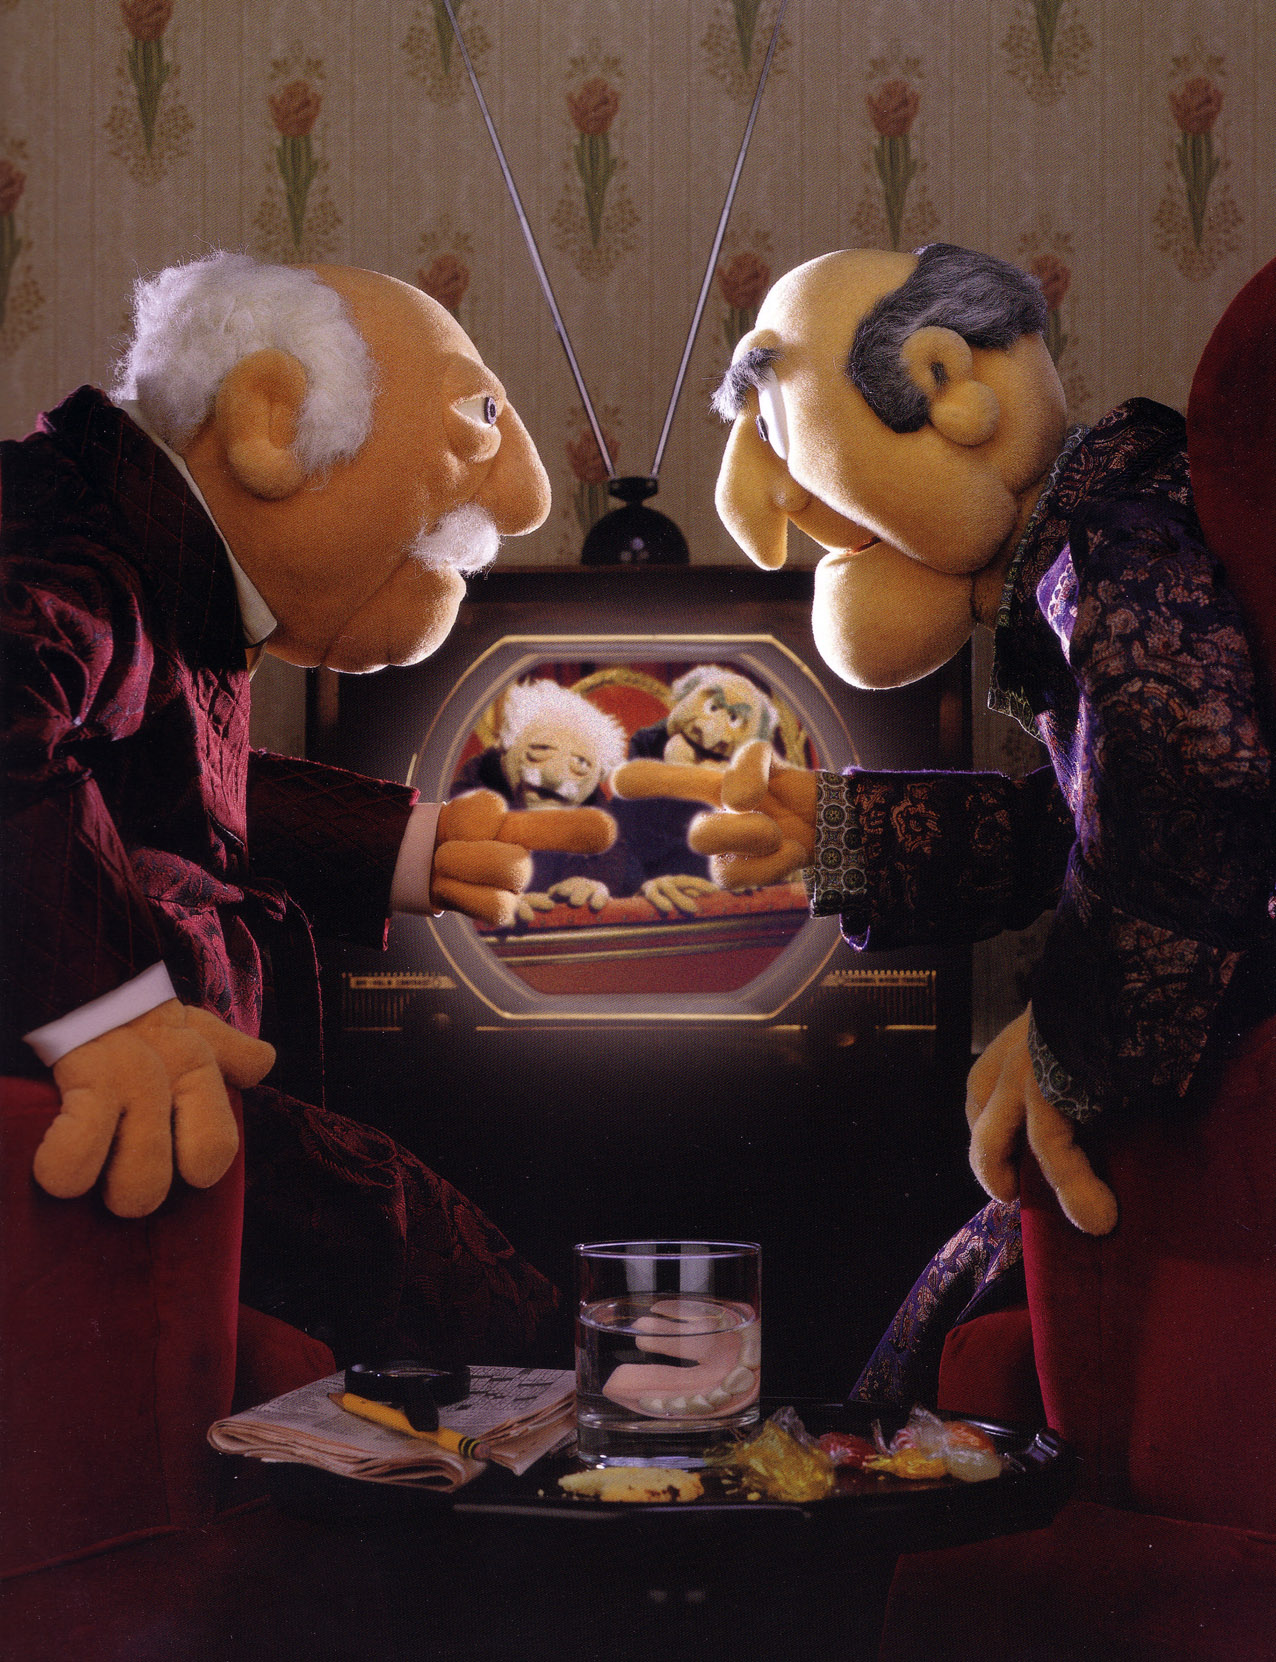 Statler and Waldorf | Muppet Wiki | Fandom powered by Wikia